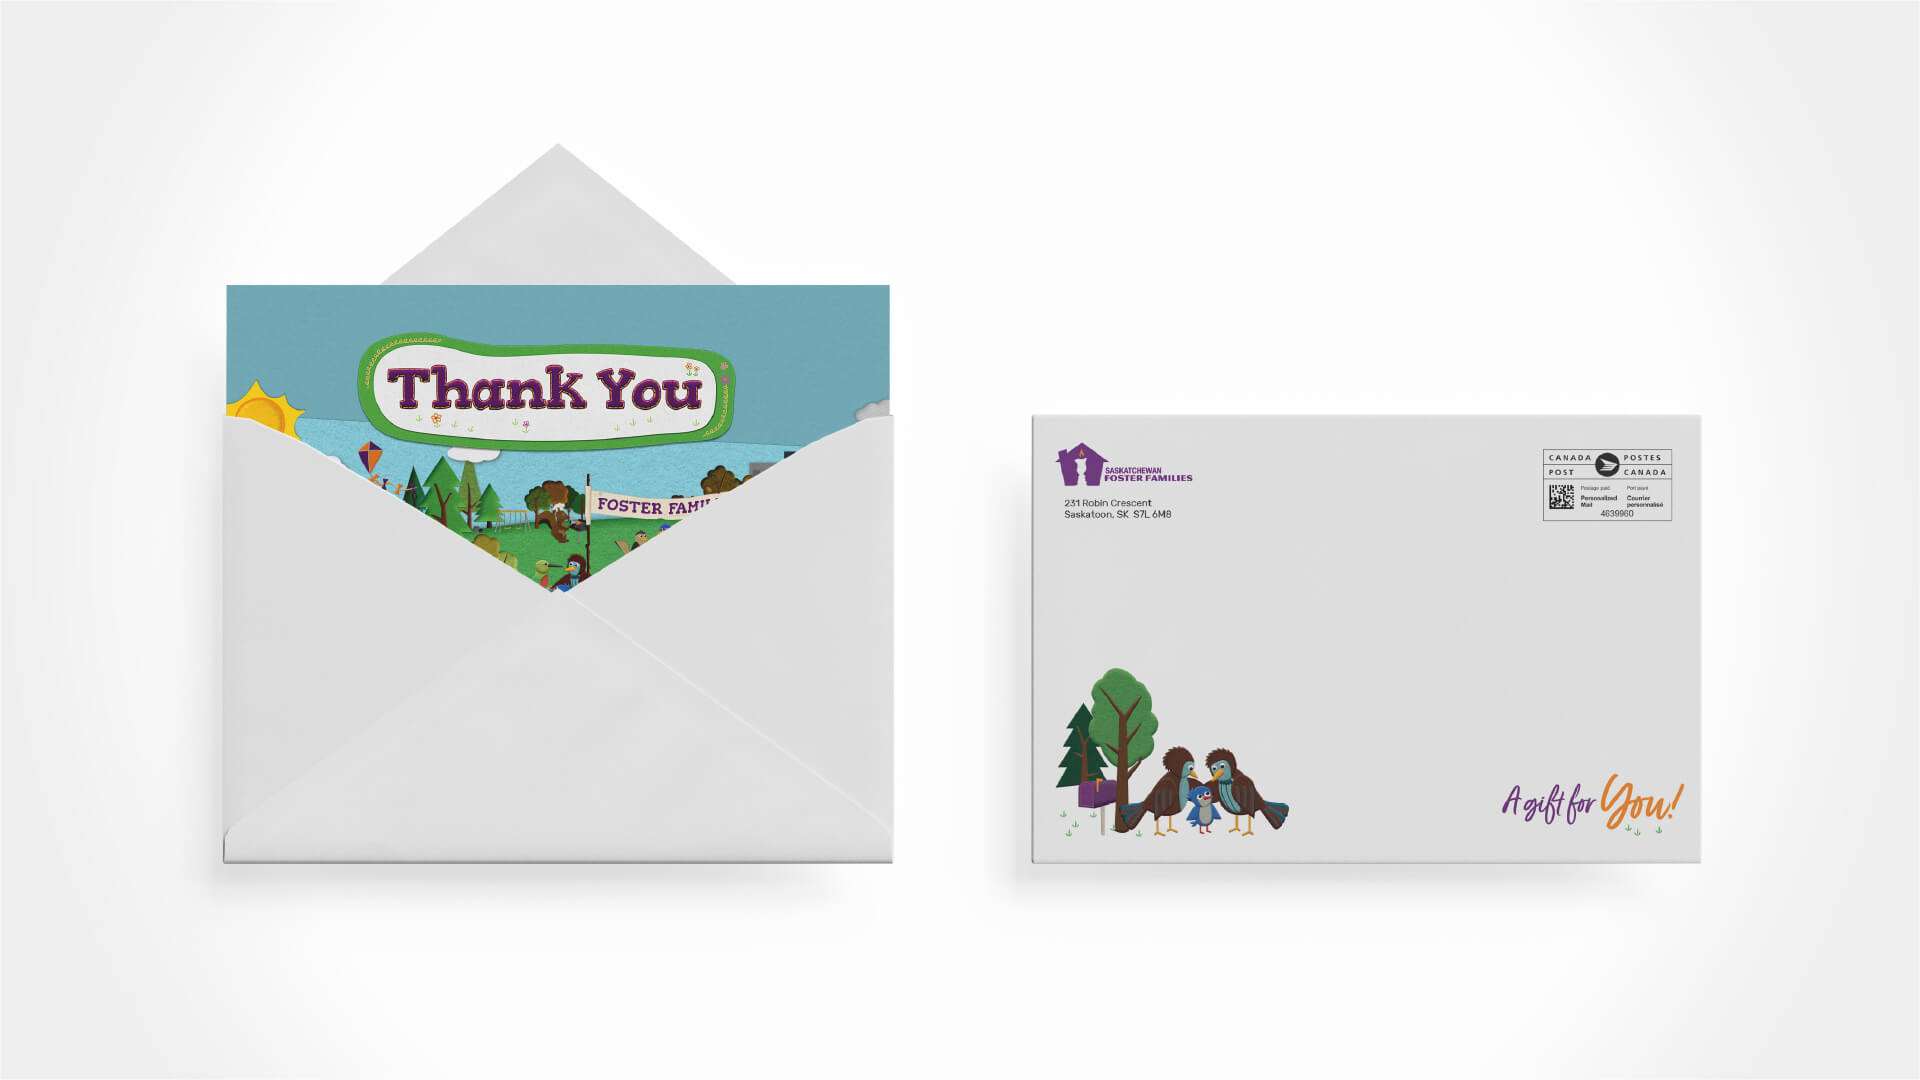 Saskatchewan Foster Families Association, Design, Foster Families Month Thank You Card, Portfolio Image, Packaging includes a creative envelope approach.